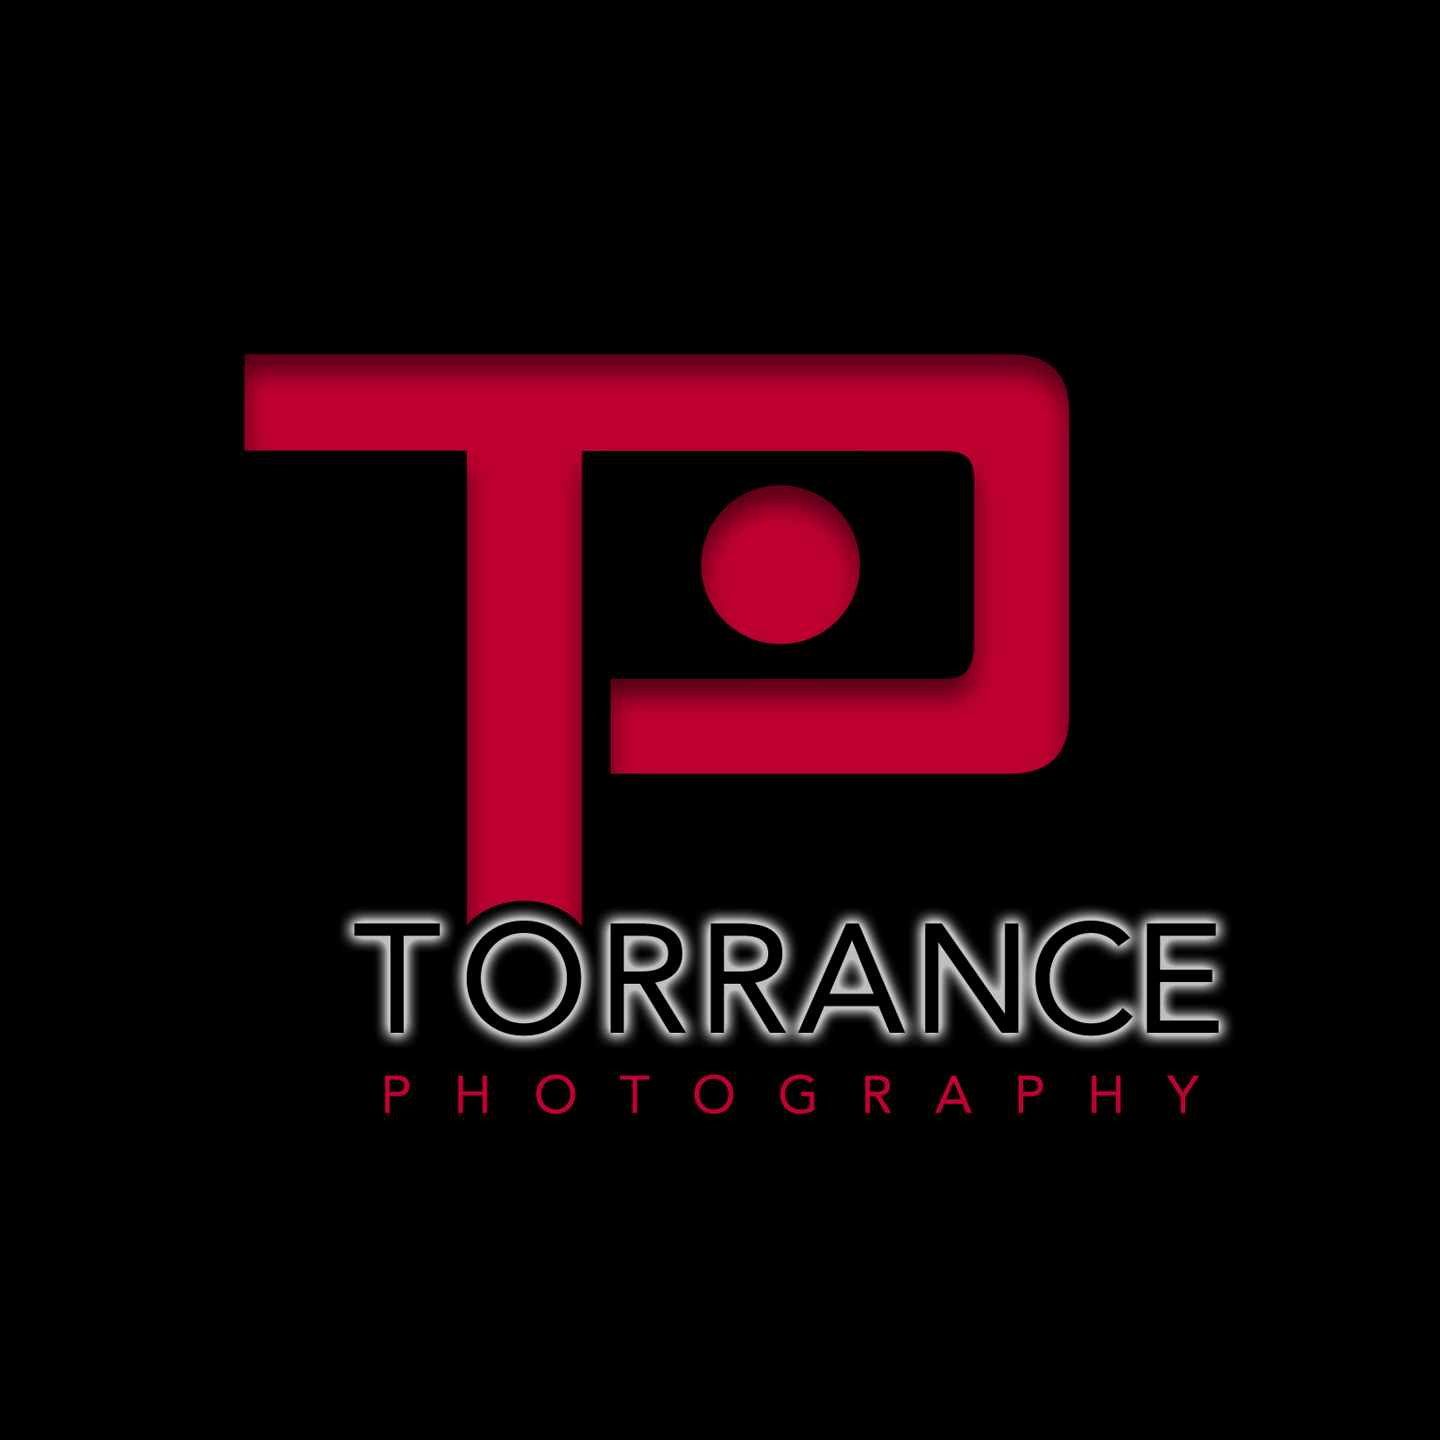 Torrance Photography, LLC